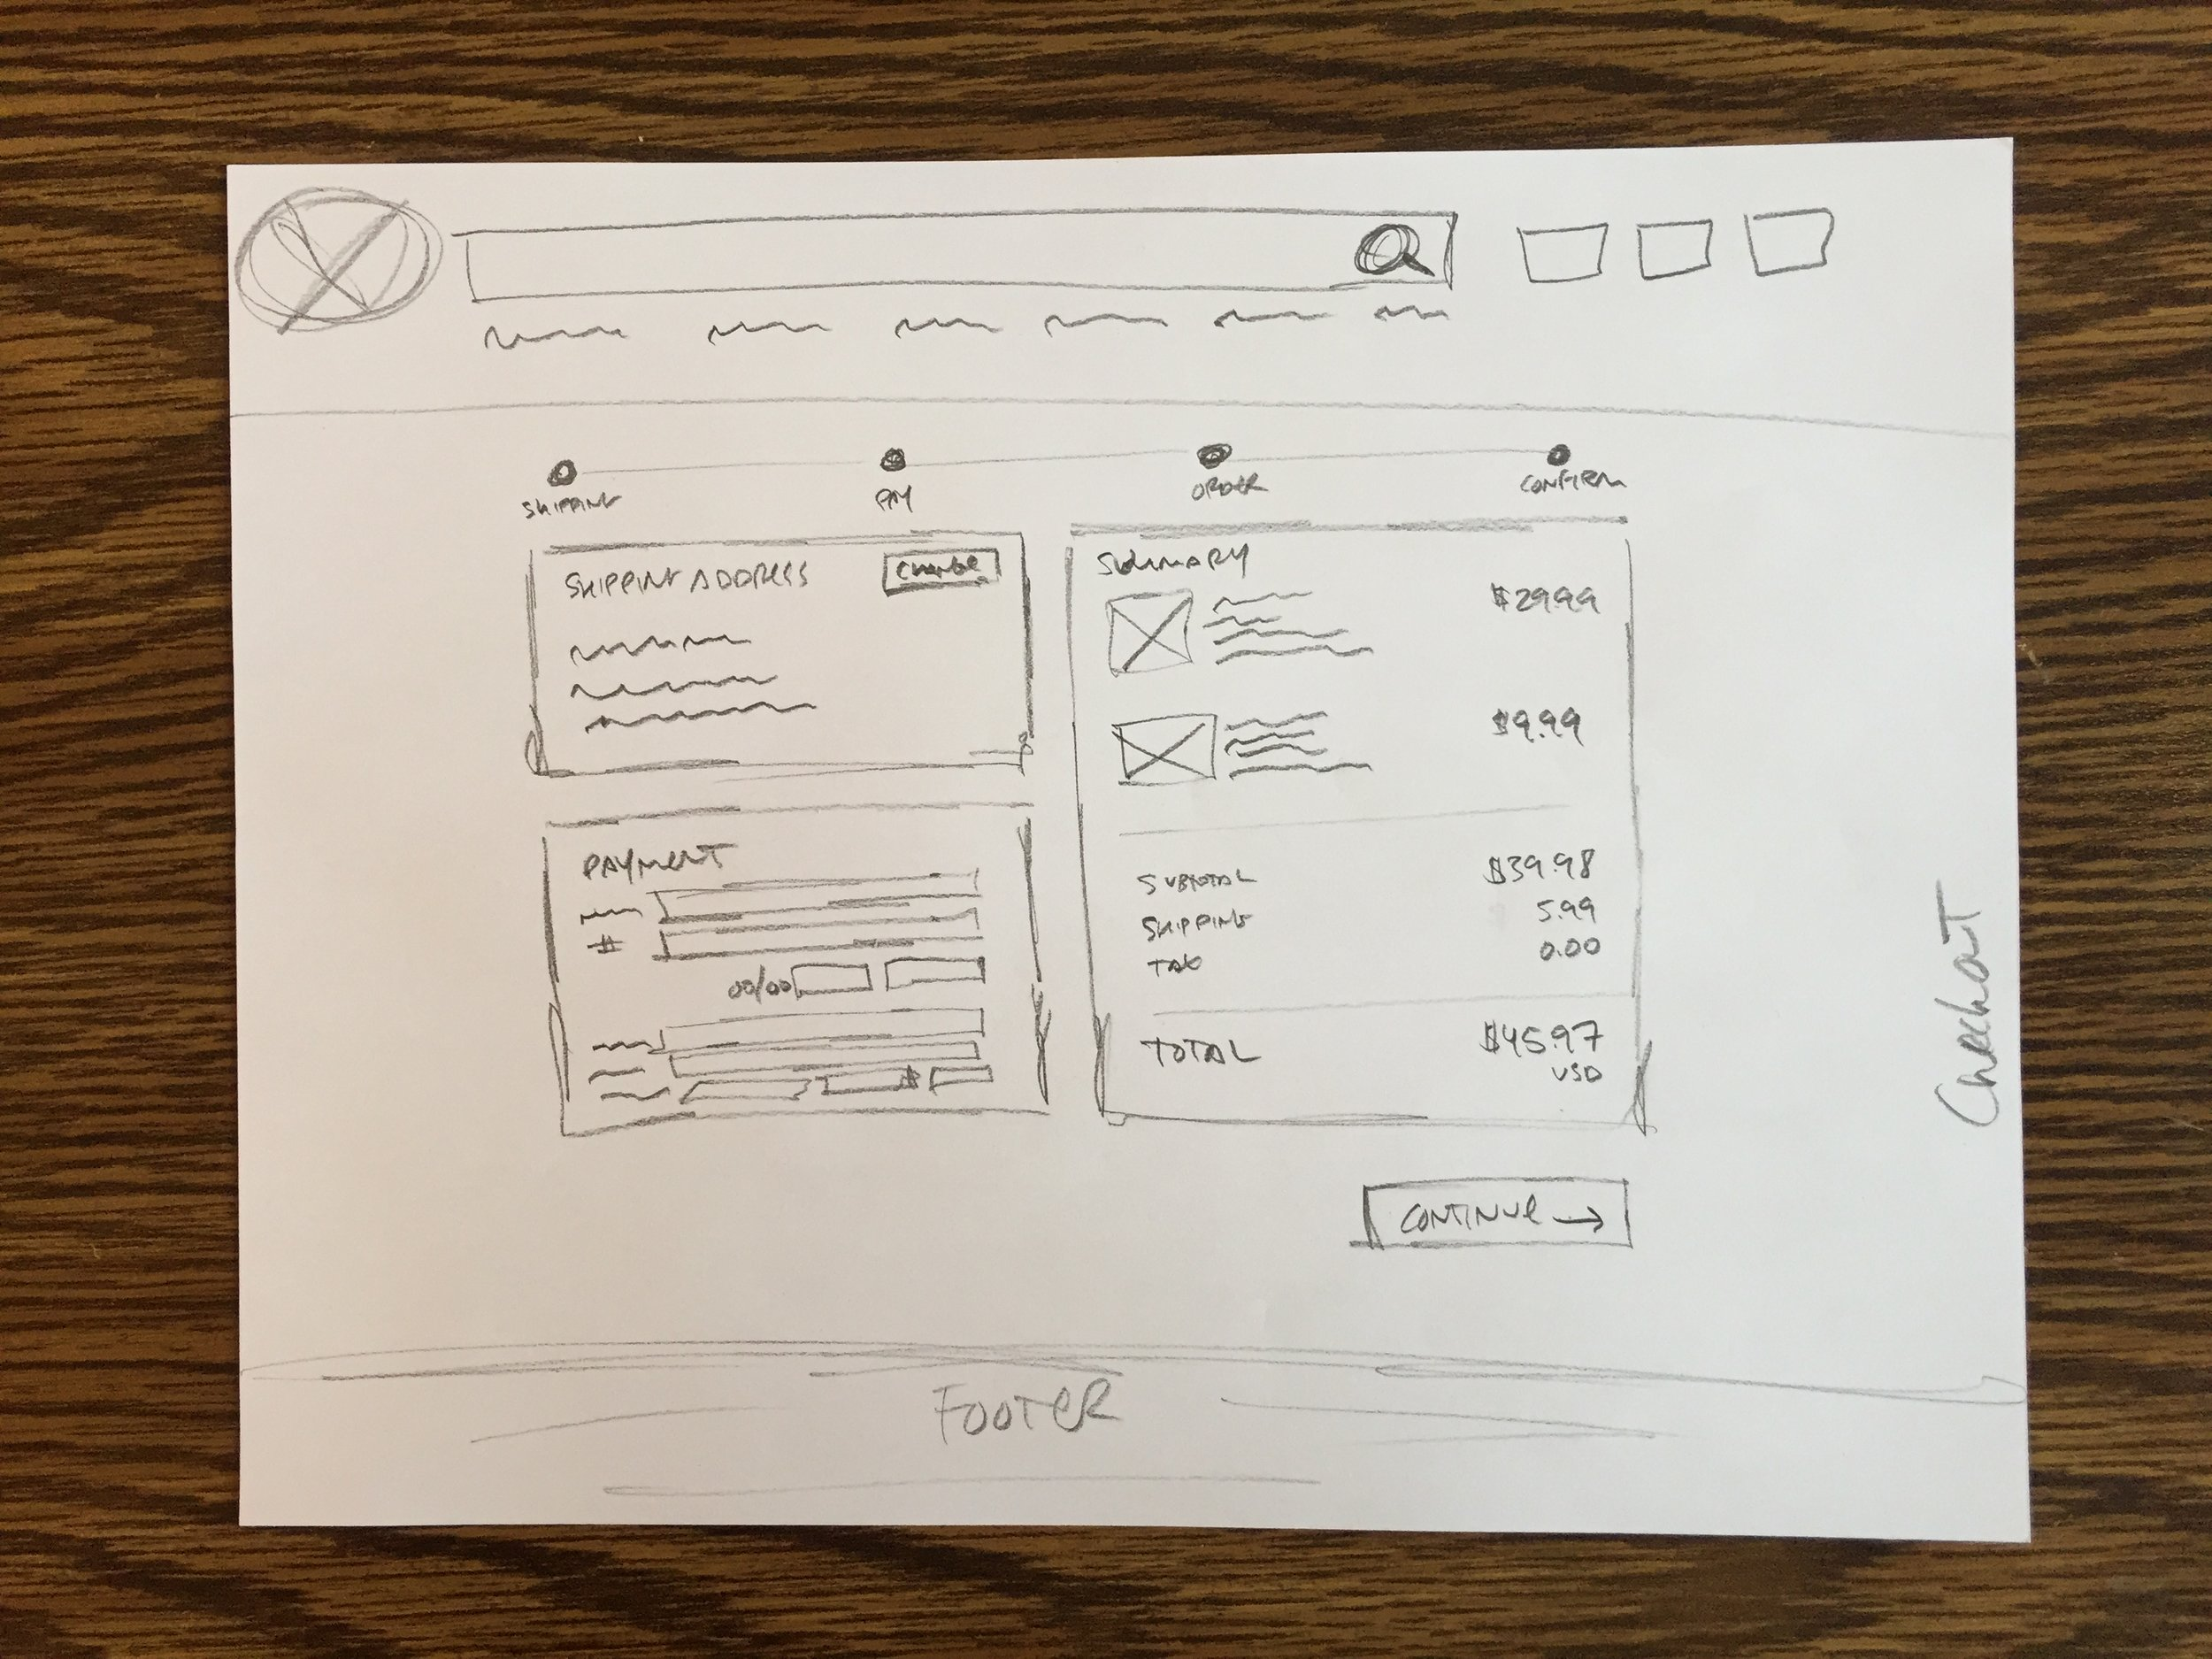 Sketch of the checkout page.